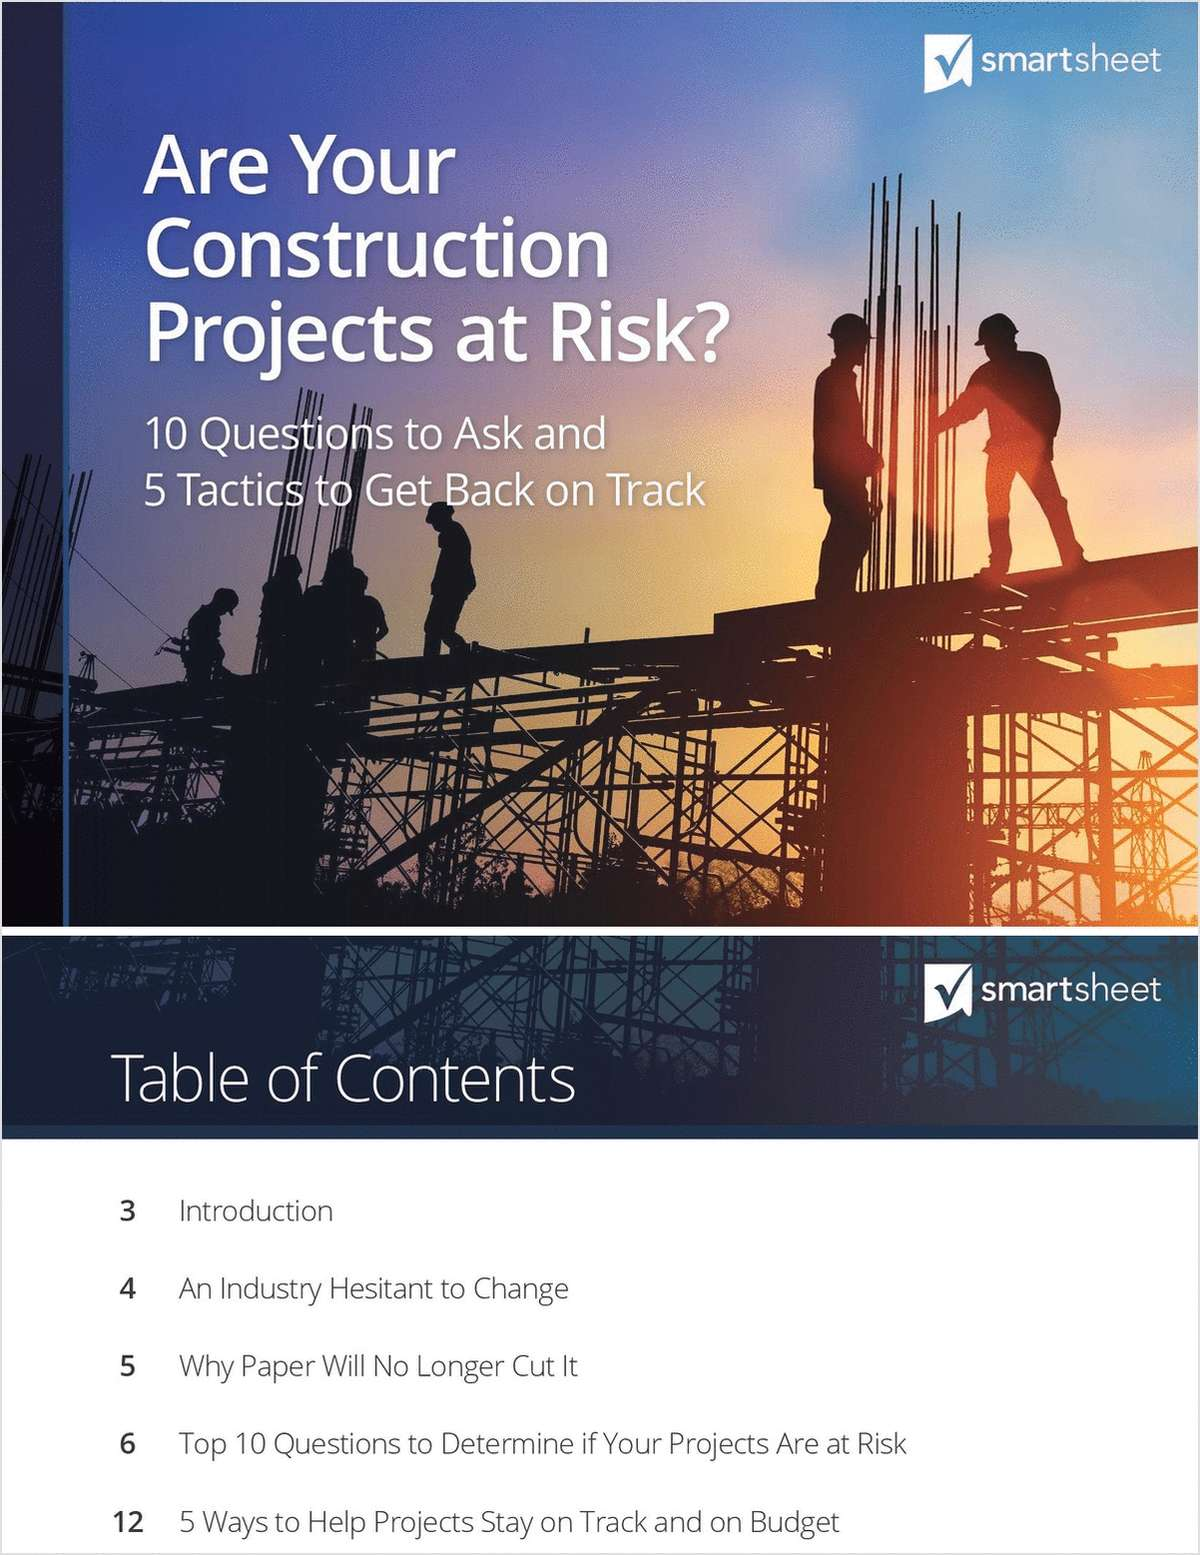 Are Your Construction Projects at Risk?